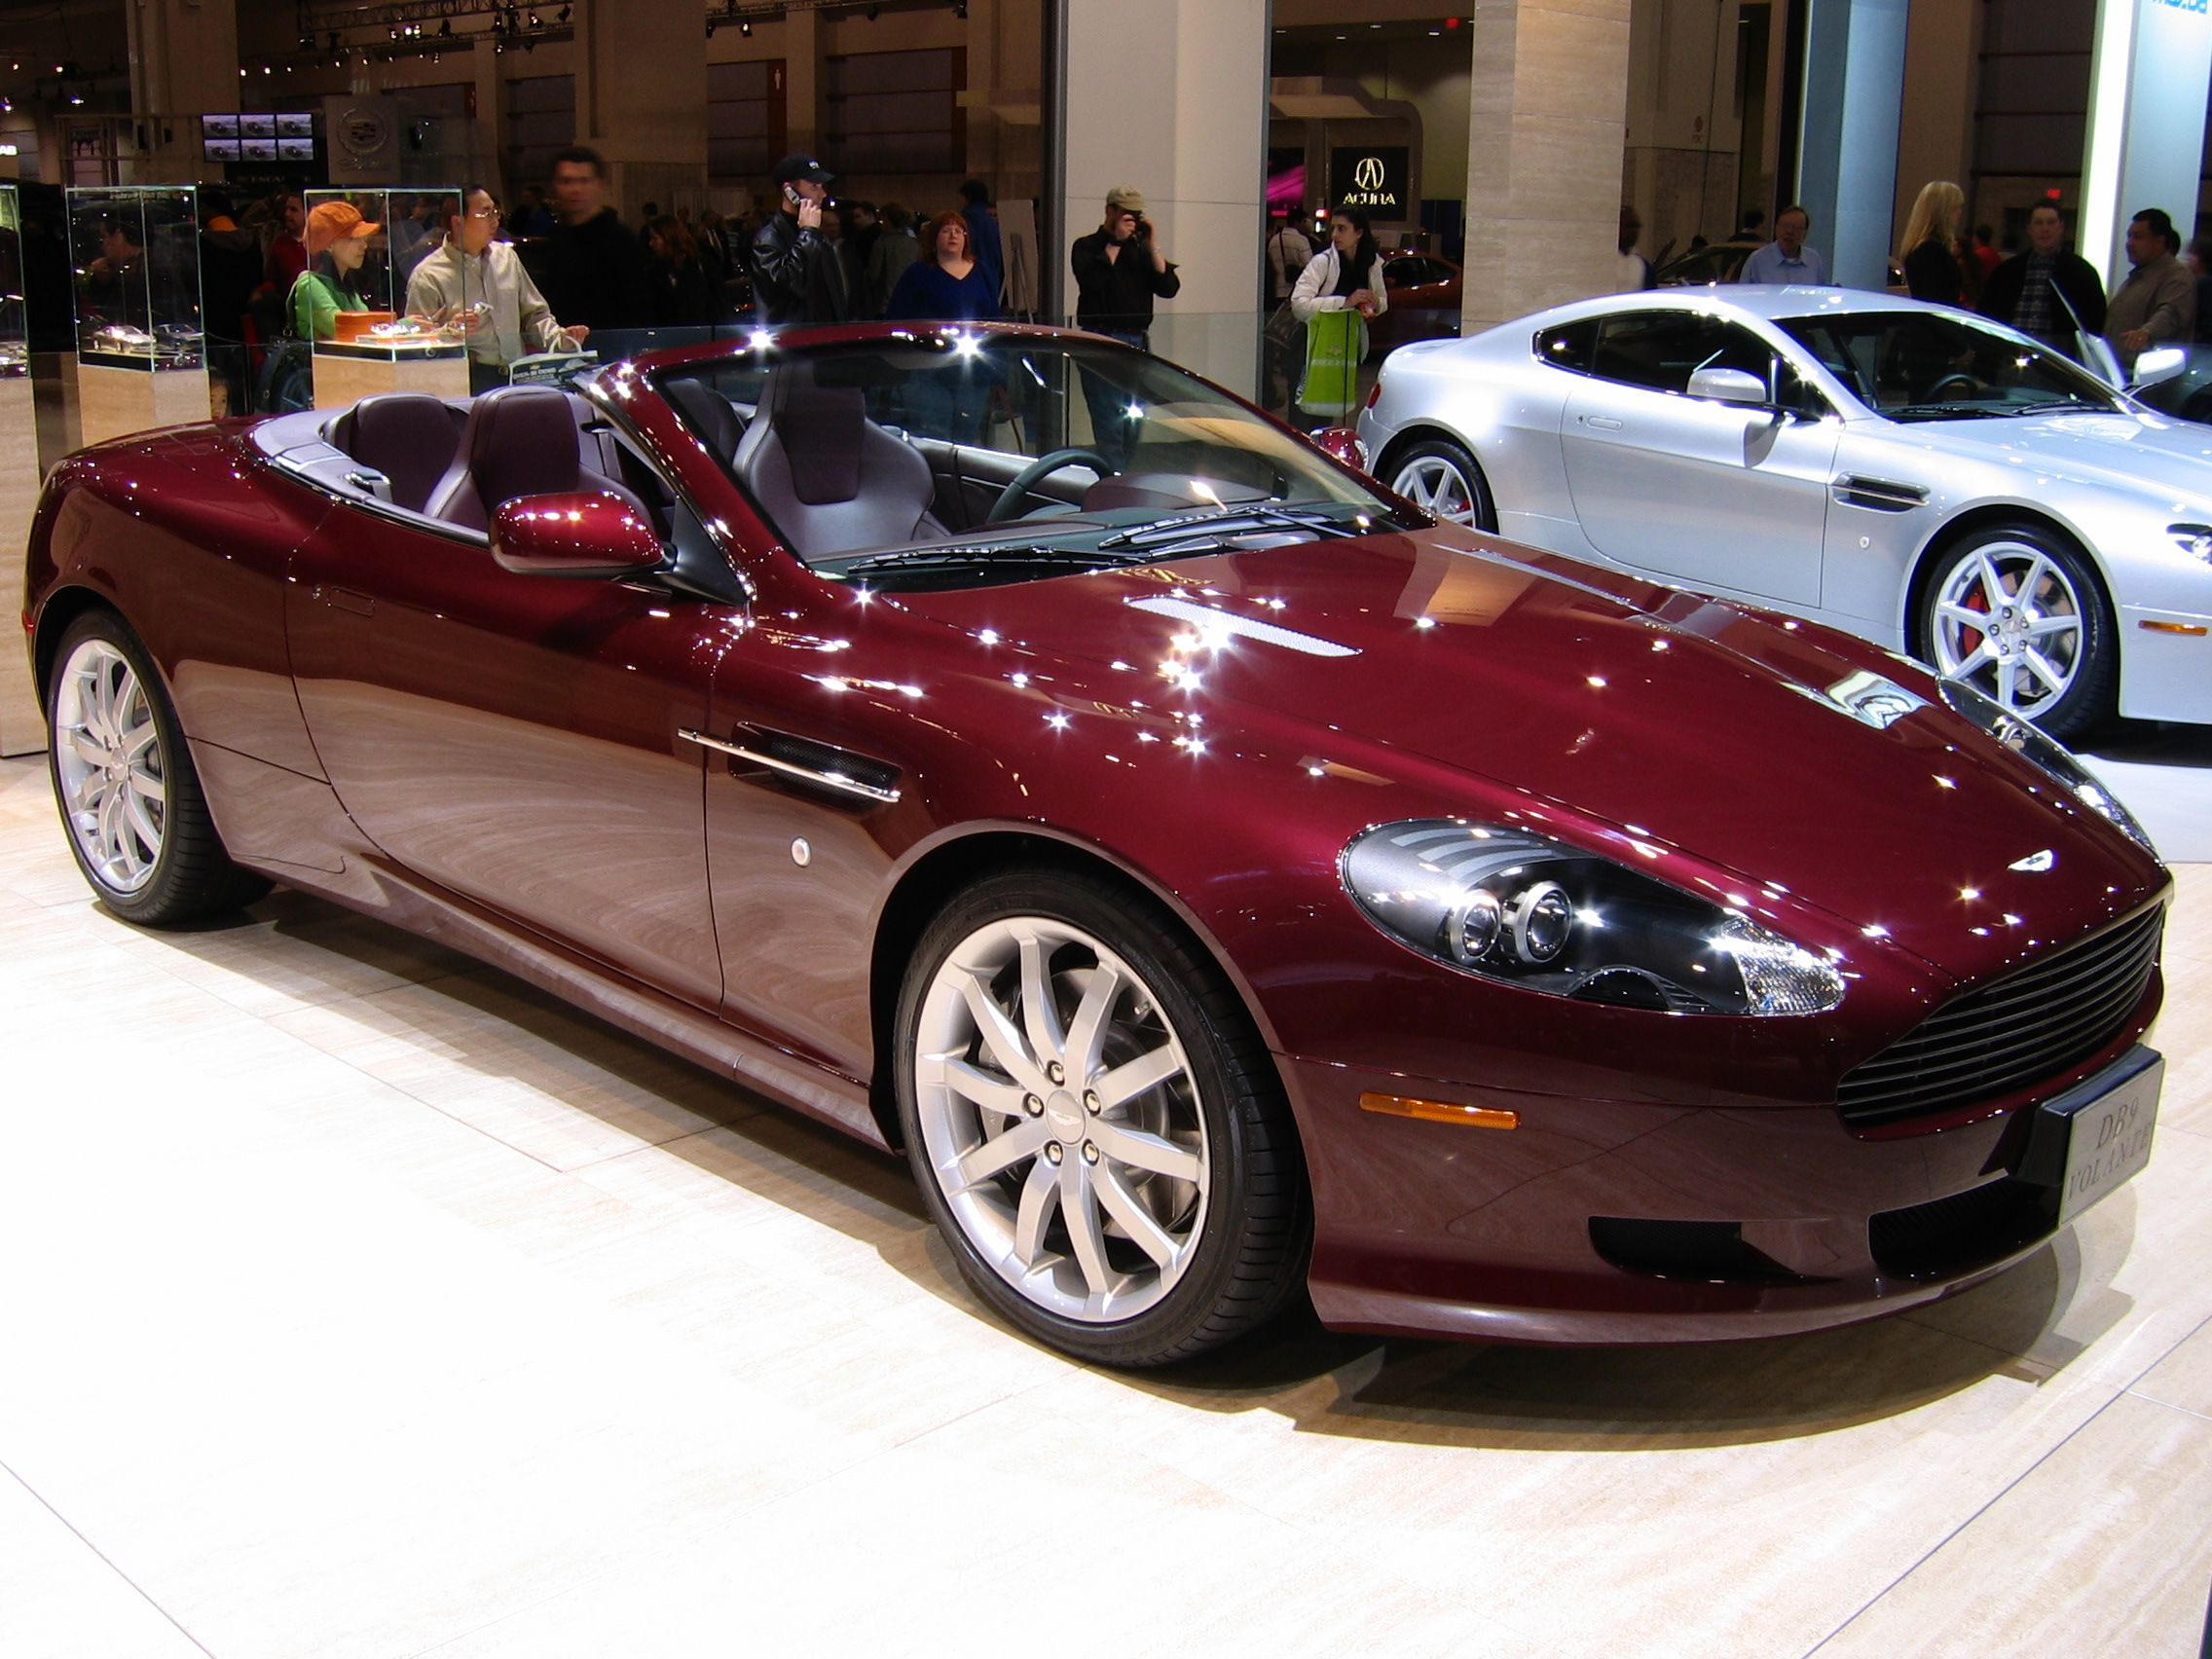 Whatu0027s That In Your Driveway? Oh That? Just An Aston Martin DB9 Volante.